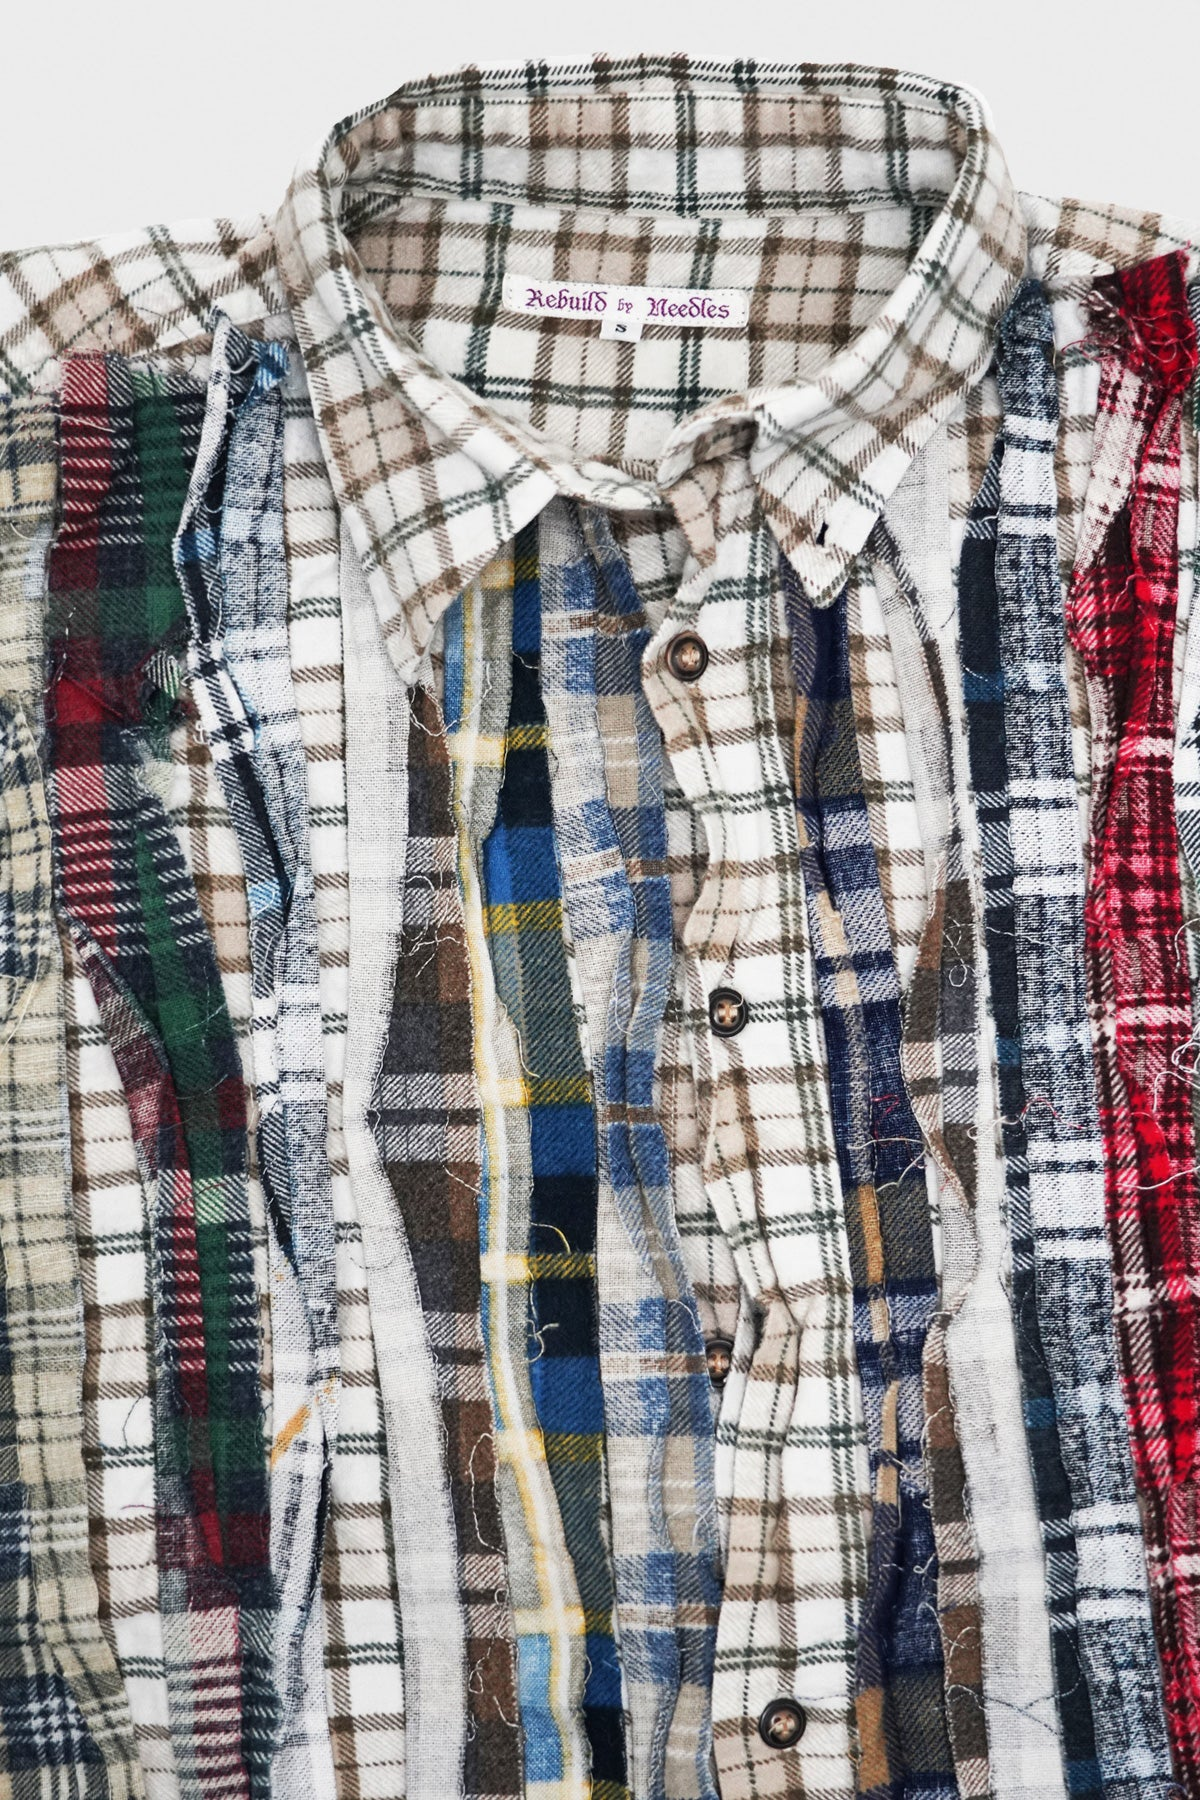 Needles - Ribbon Flannel Shirt - Assorted #1 - Medium - Canoe Club